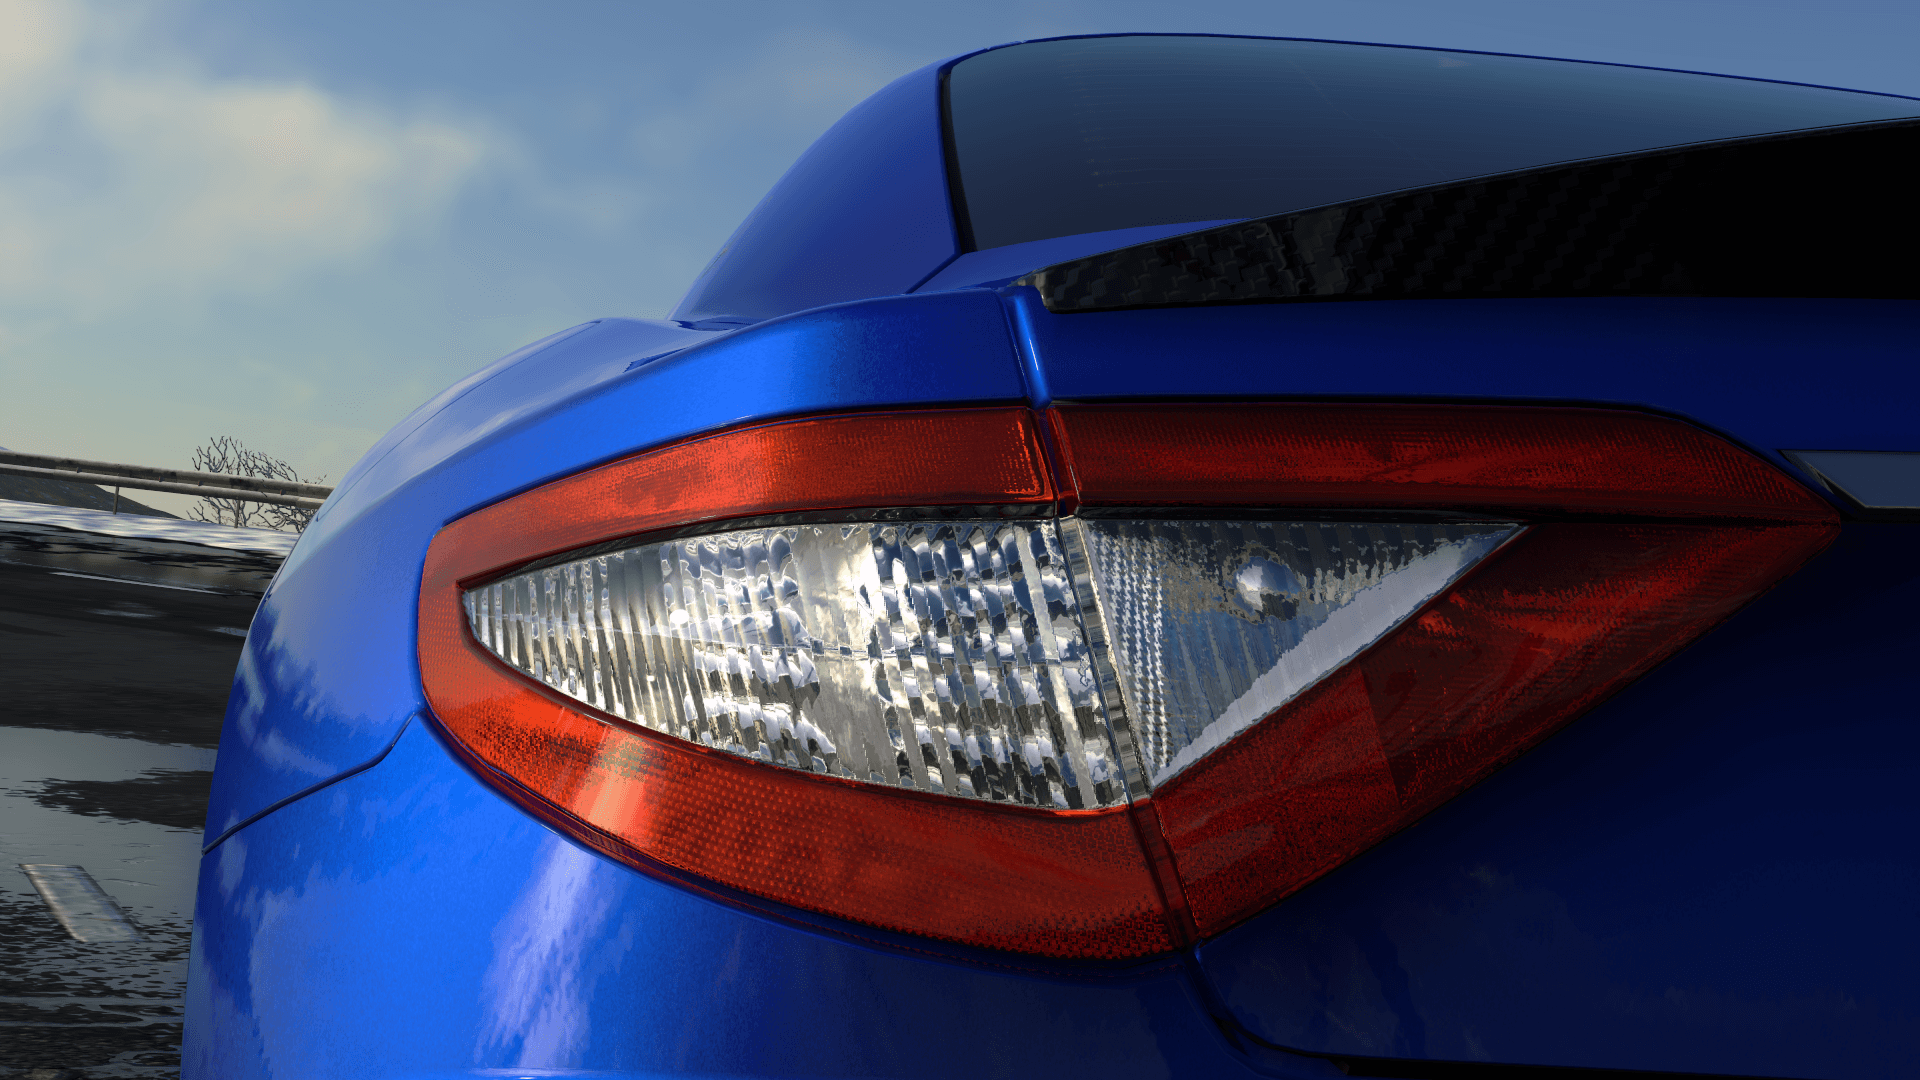 Obviously a lot of polish has gone into Driveclub. Look how shiny this car is!